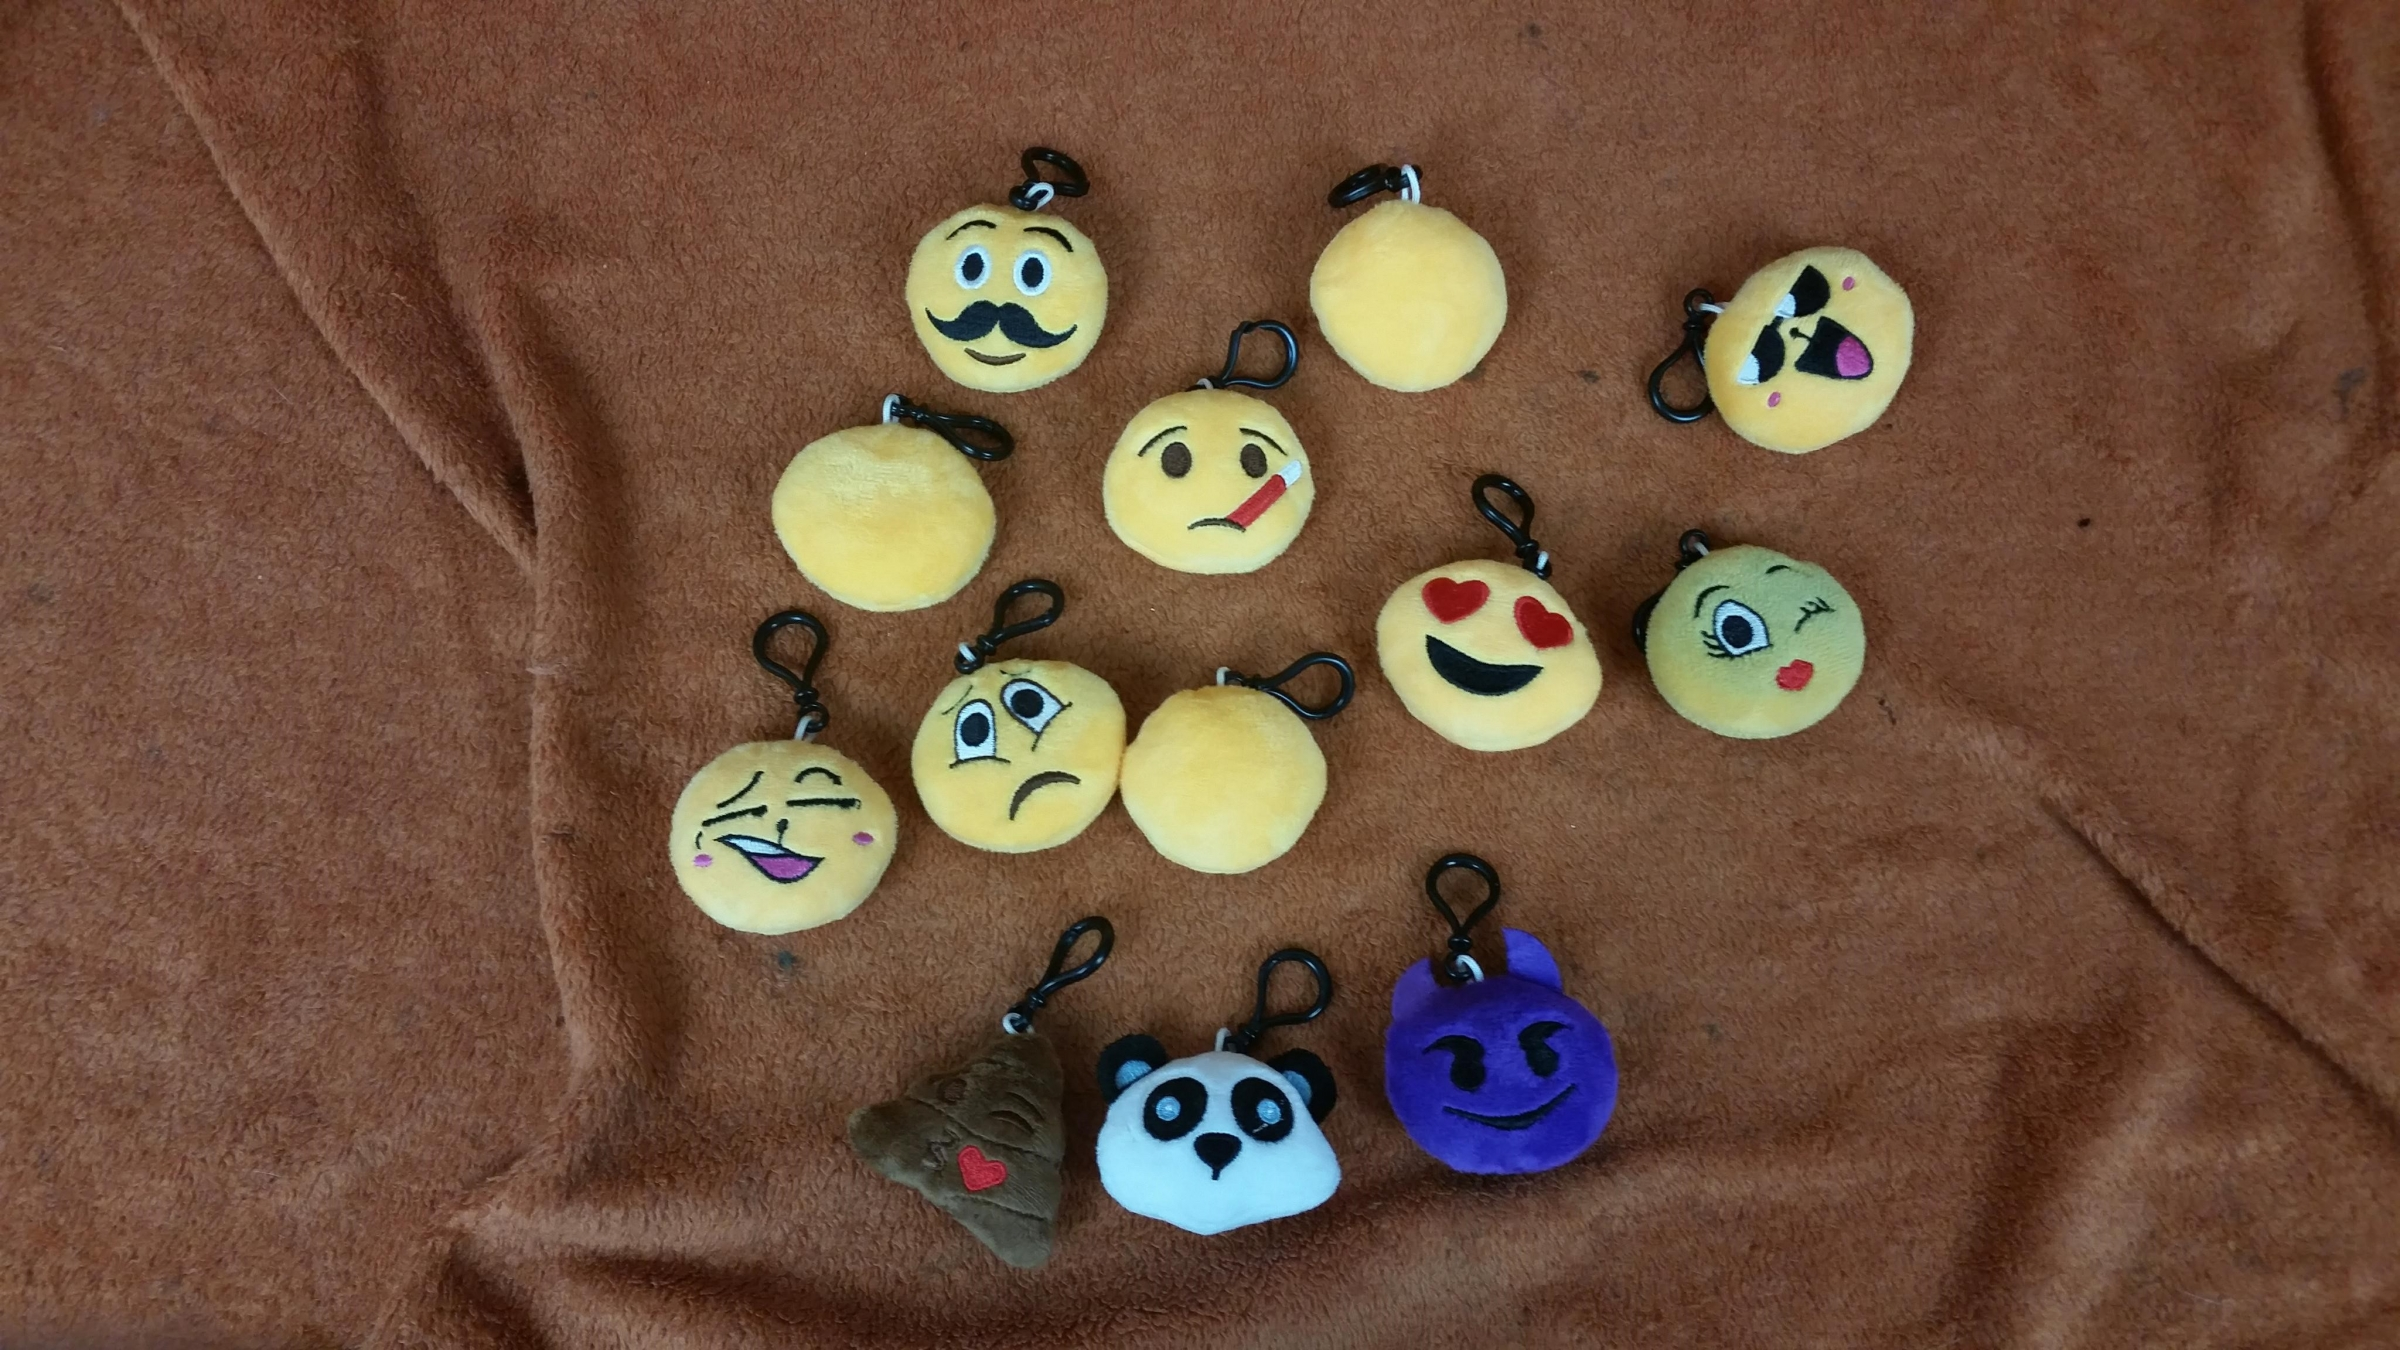 Well stitched, fun, cute different emoji plush key chains, LOTS to choose from, made for perfect stocking stuffers for Christmas for my family.